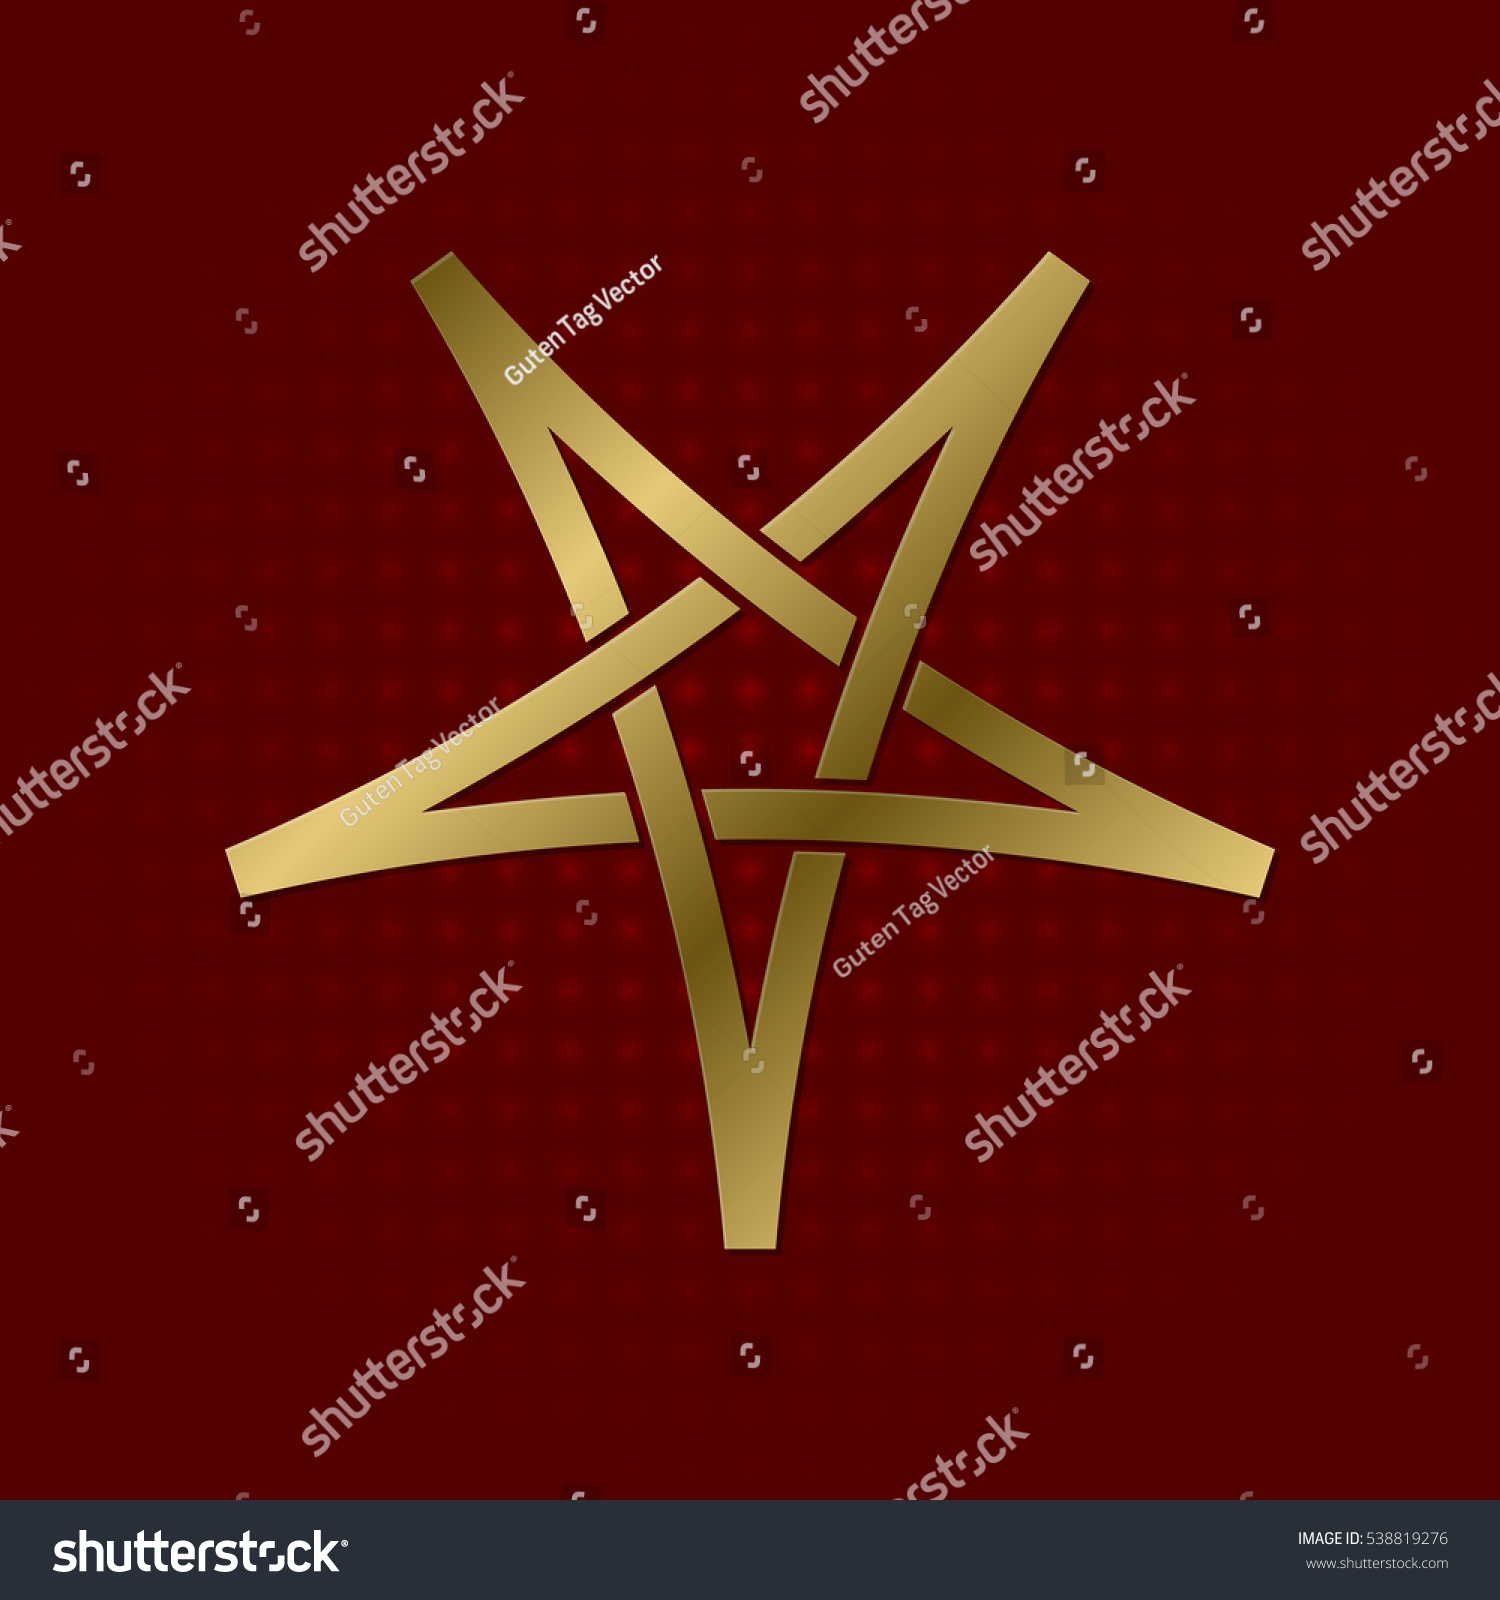 Symbol for five choice image symbol and sign ideas sacred geometric symbol five pointed star stock vector 538819276 sacred geometric symbol of five pointed star biocorpaavc